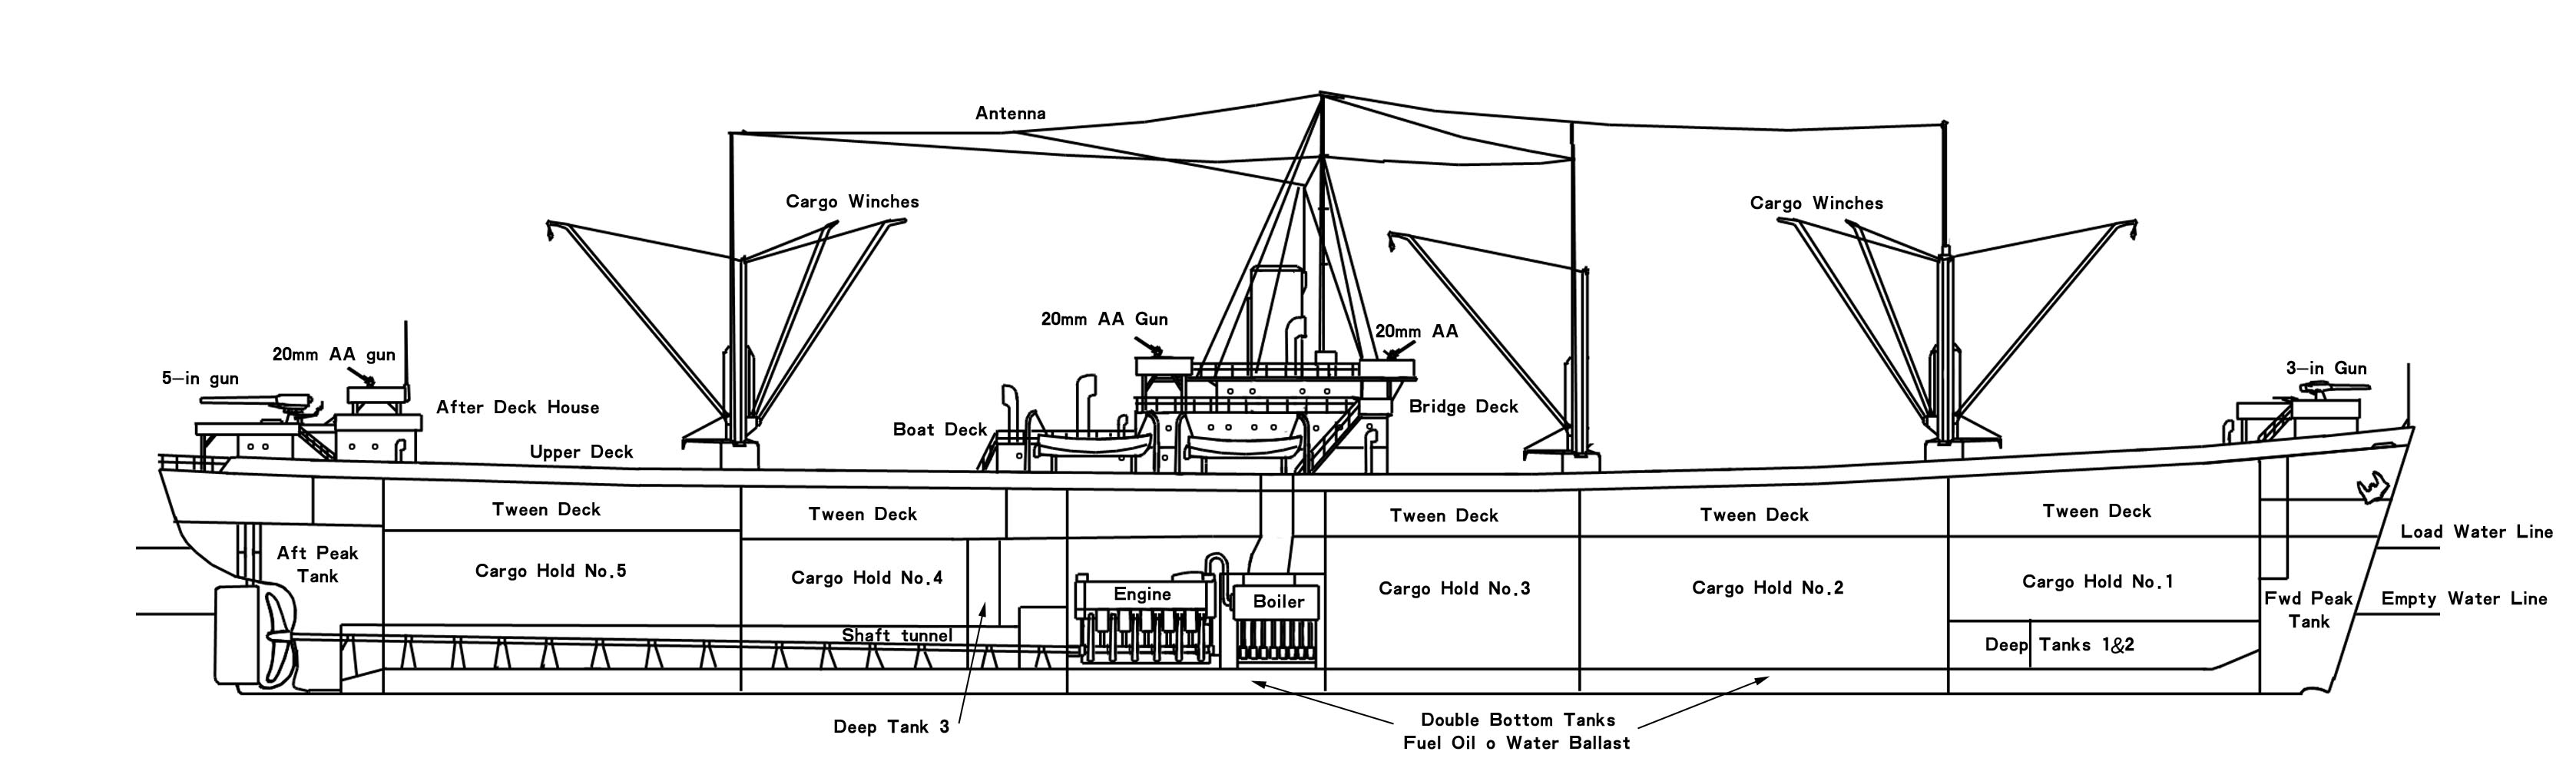 Lines Drawing Naval Architecture : Images about nautical on pinterest